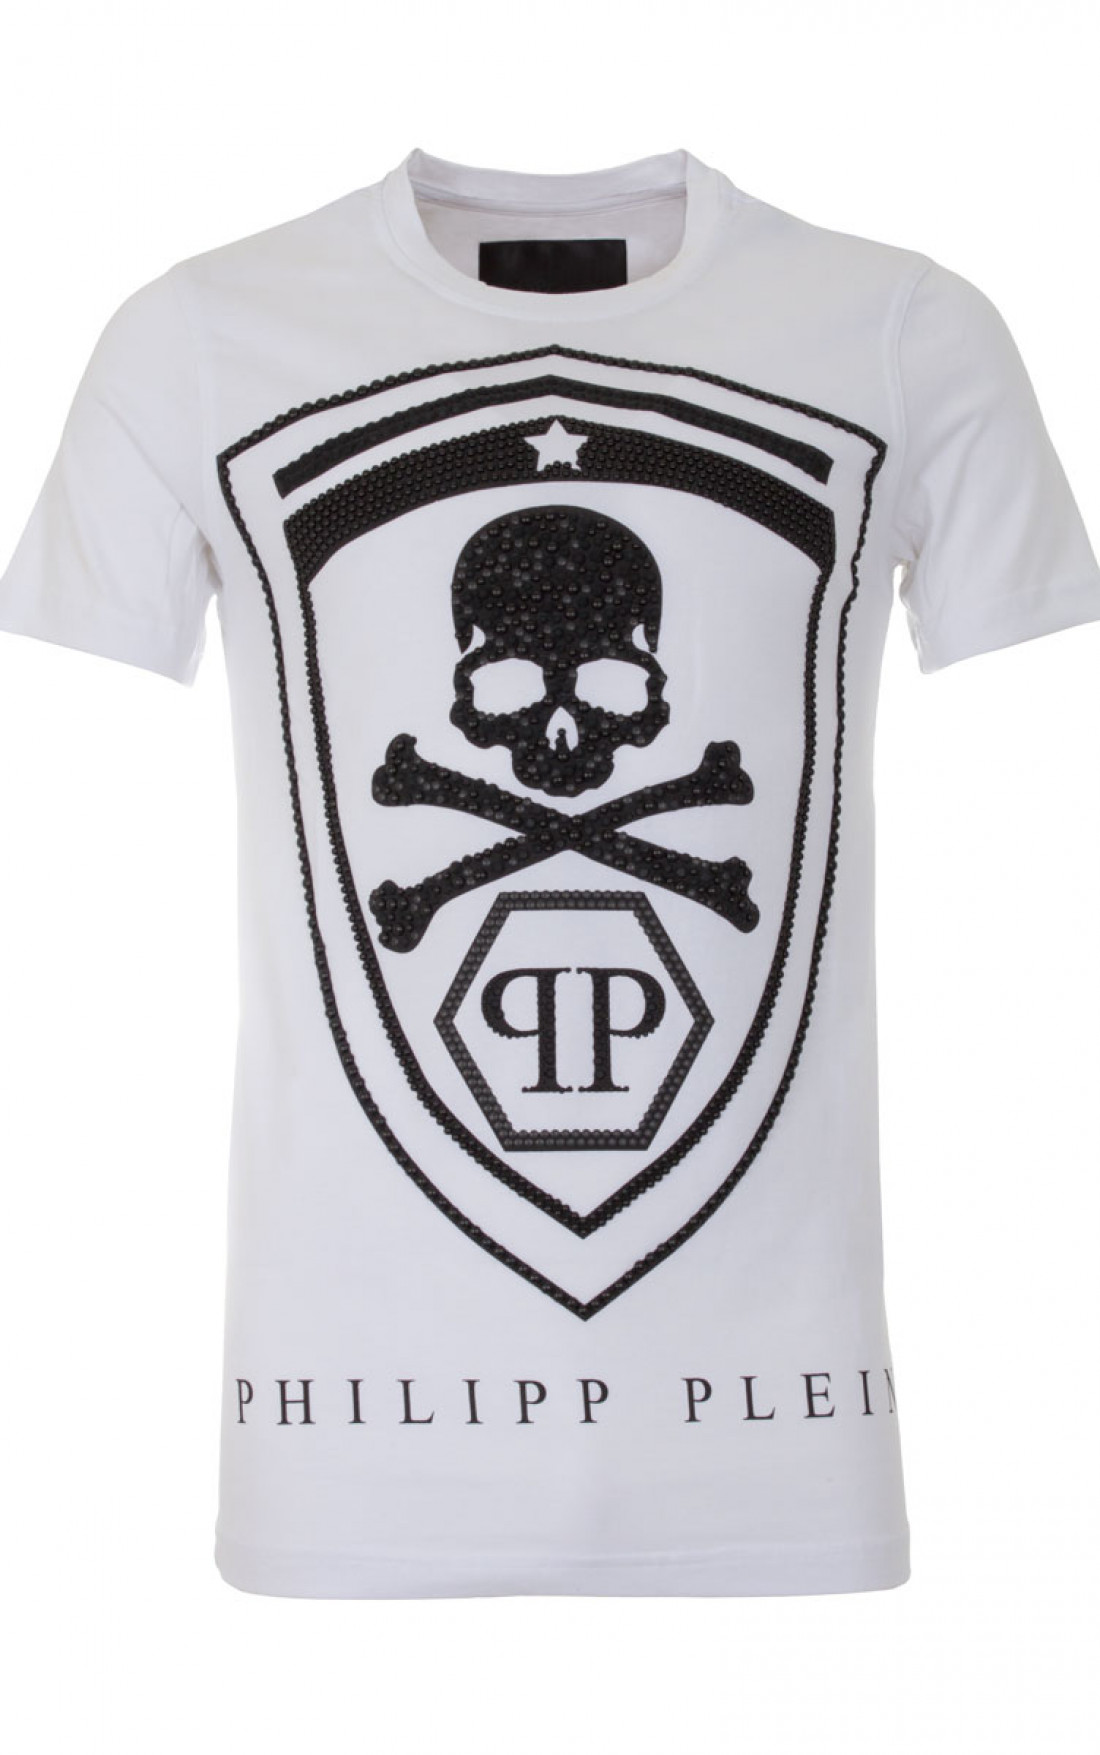 philipp plein 39 honour 39 t shirt white mens t shirt boudi fashion 98 new bond st london